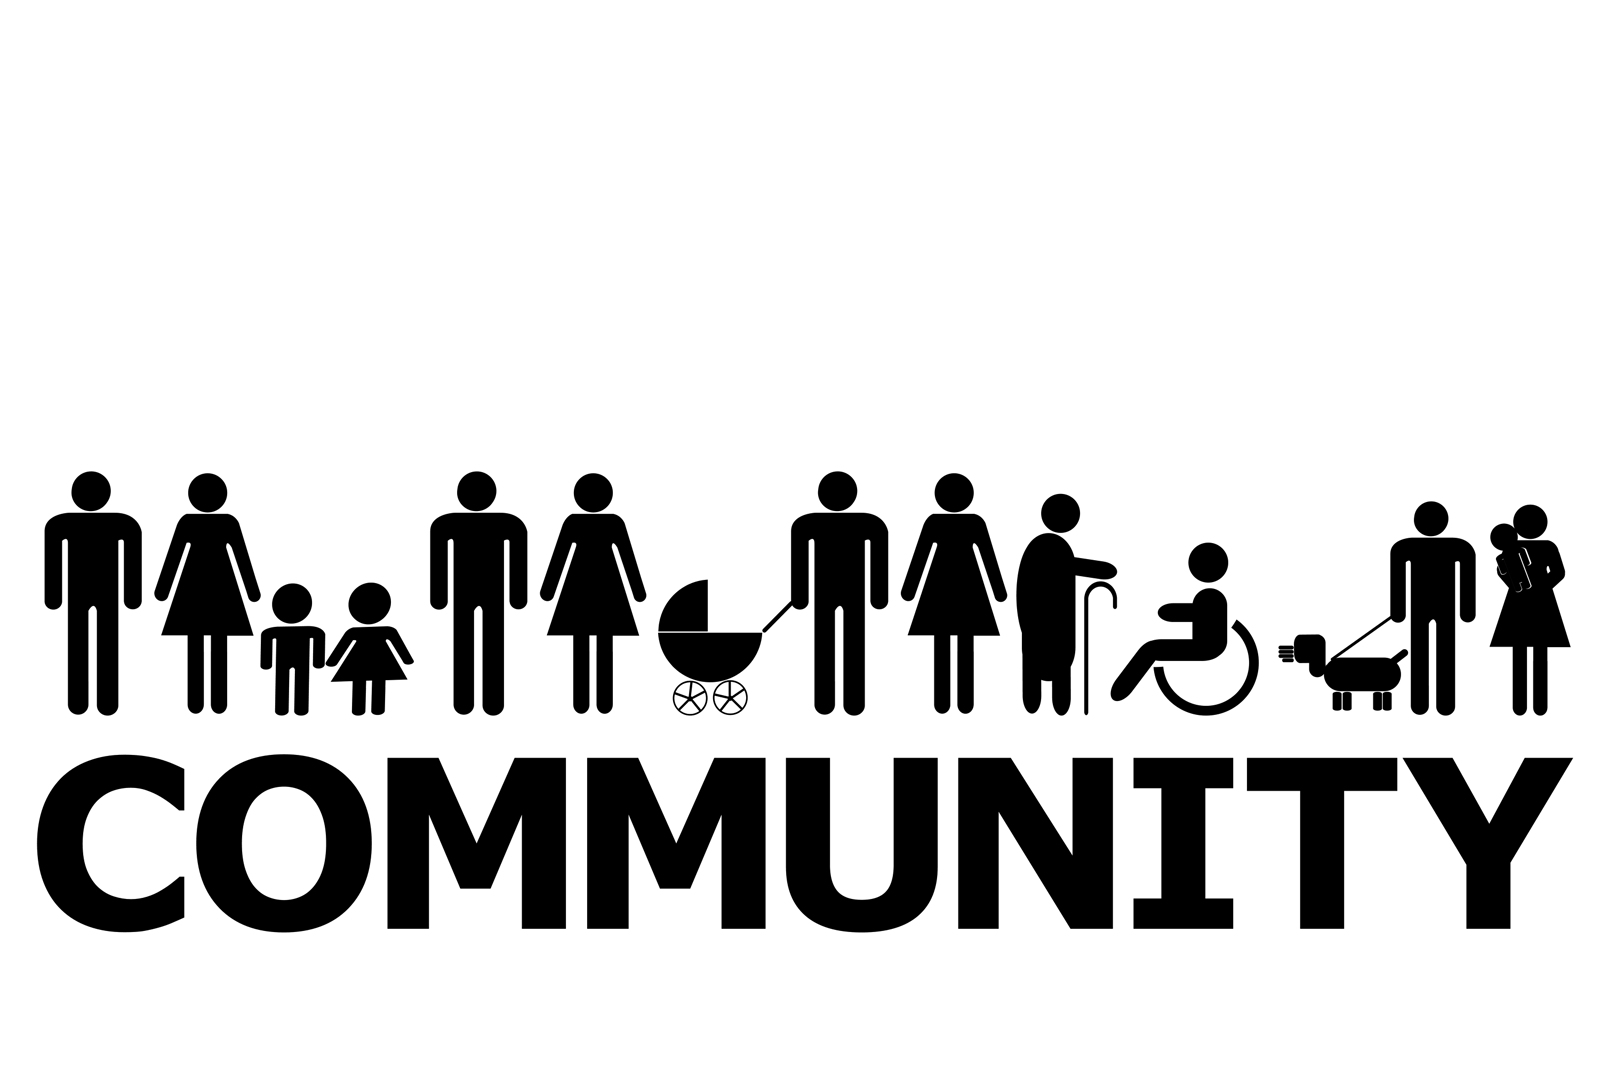 bigstock-Community-Concept-With-People--258633772